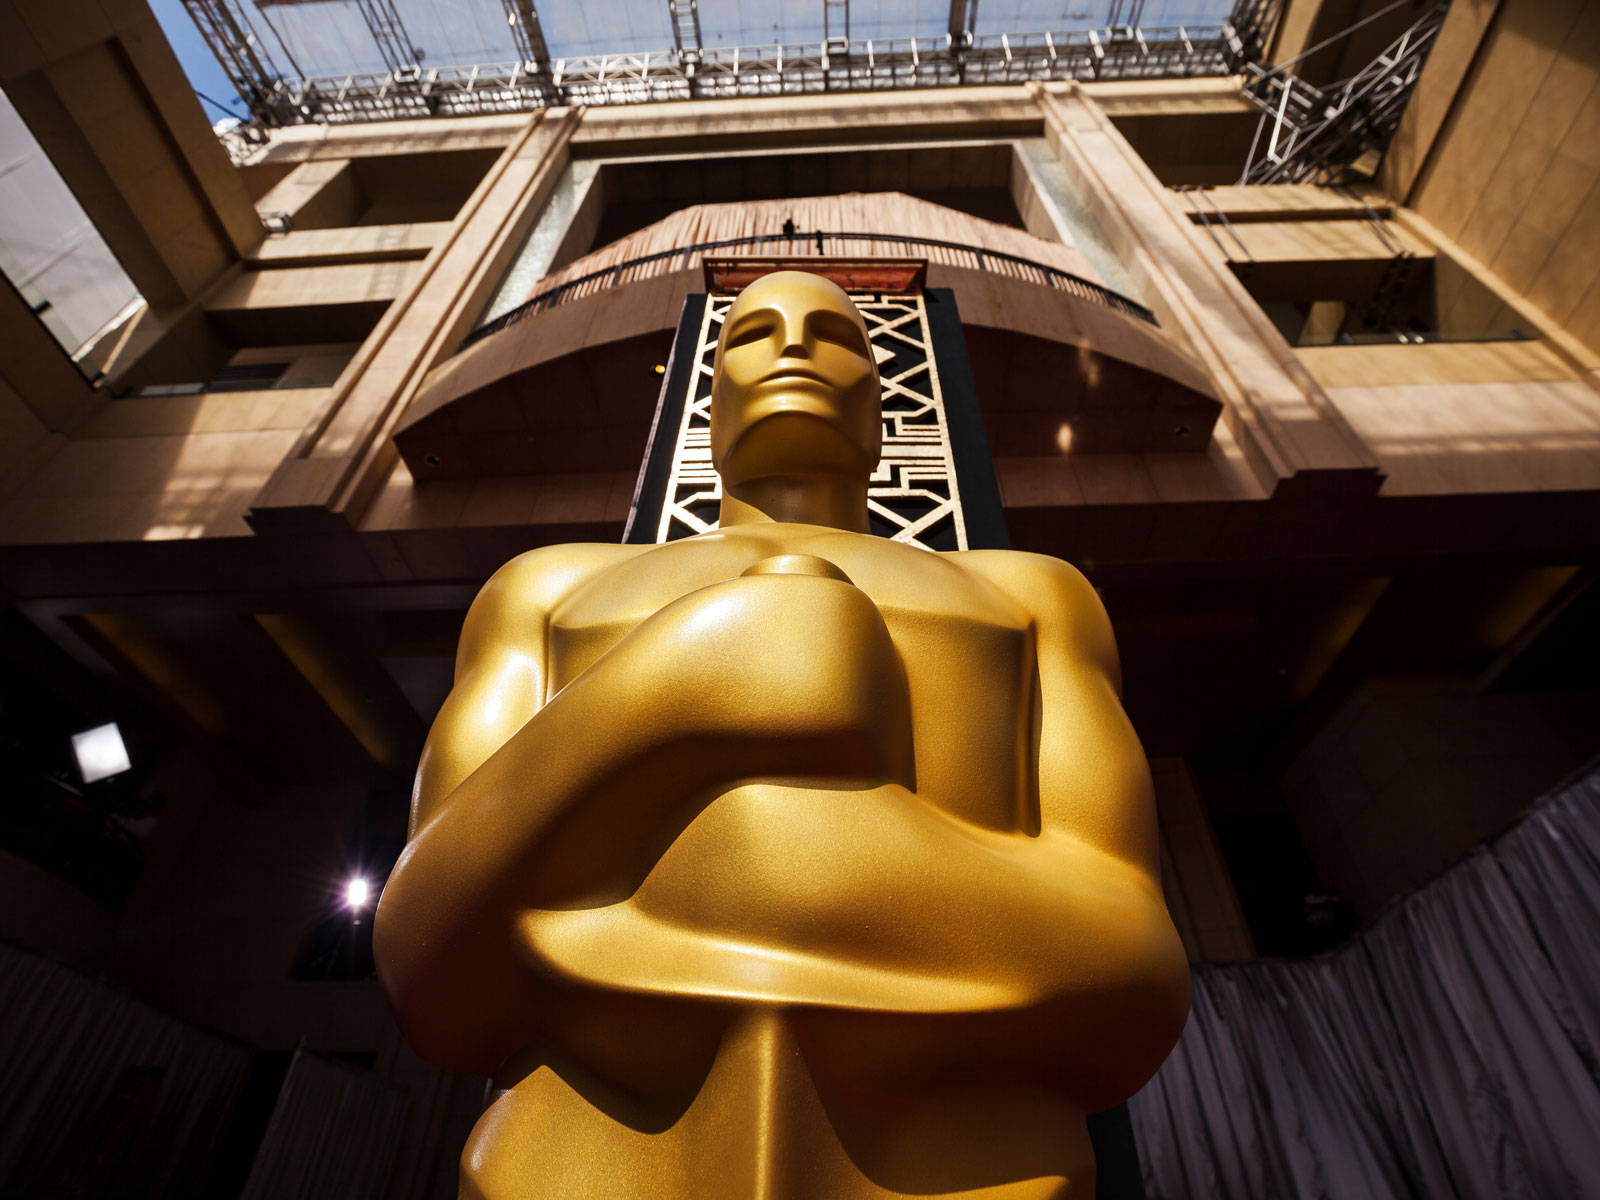 All of the Food Items Top Oscar Nominees Will Find In Their Gift Bags This Year